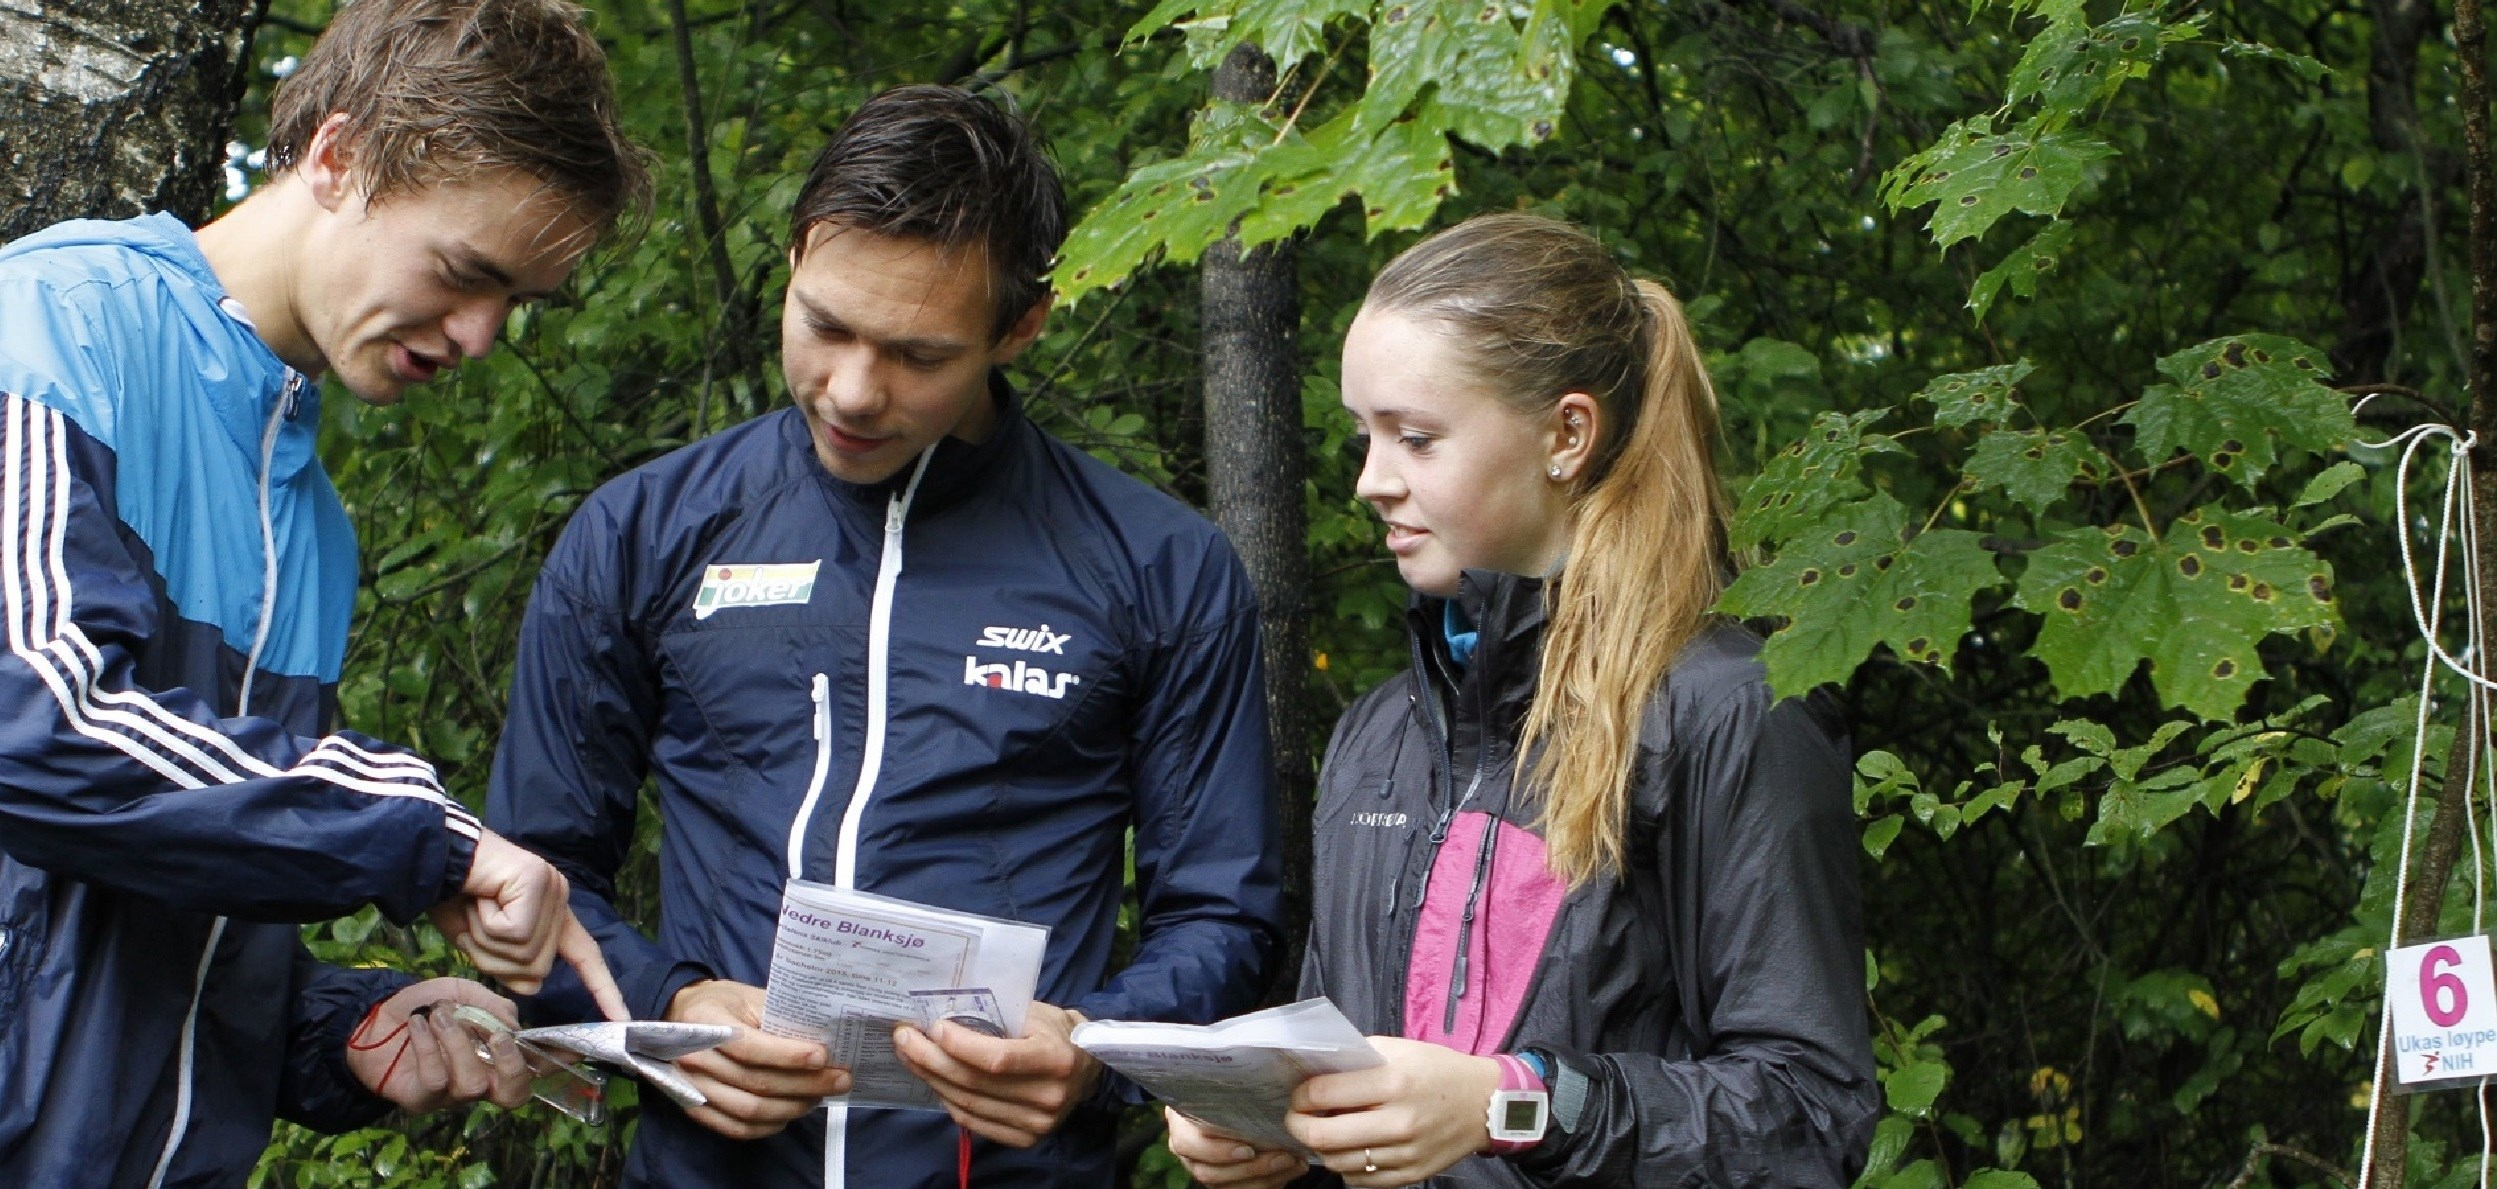 Students studying orienteerings map